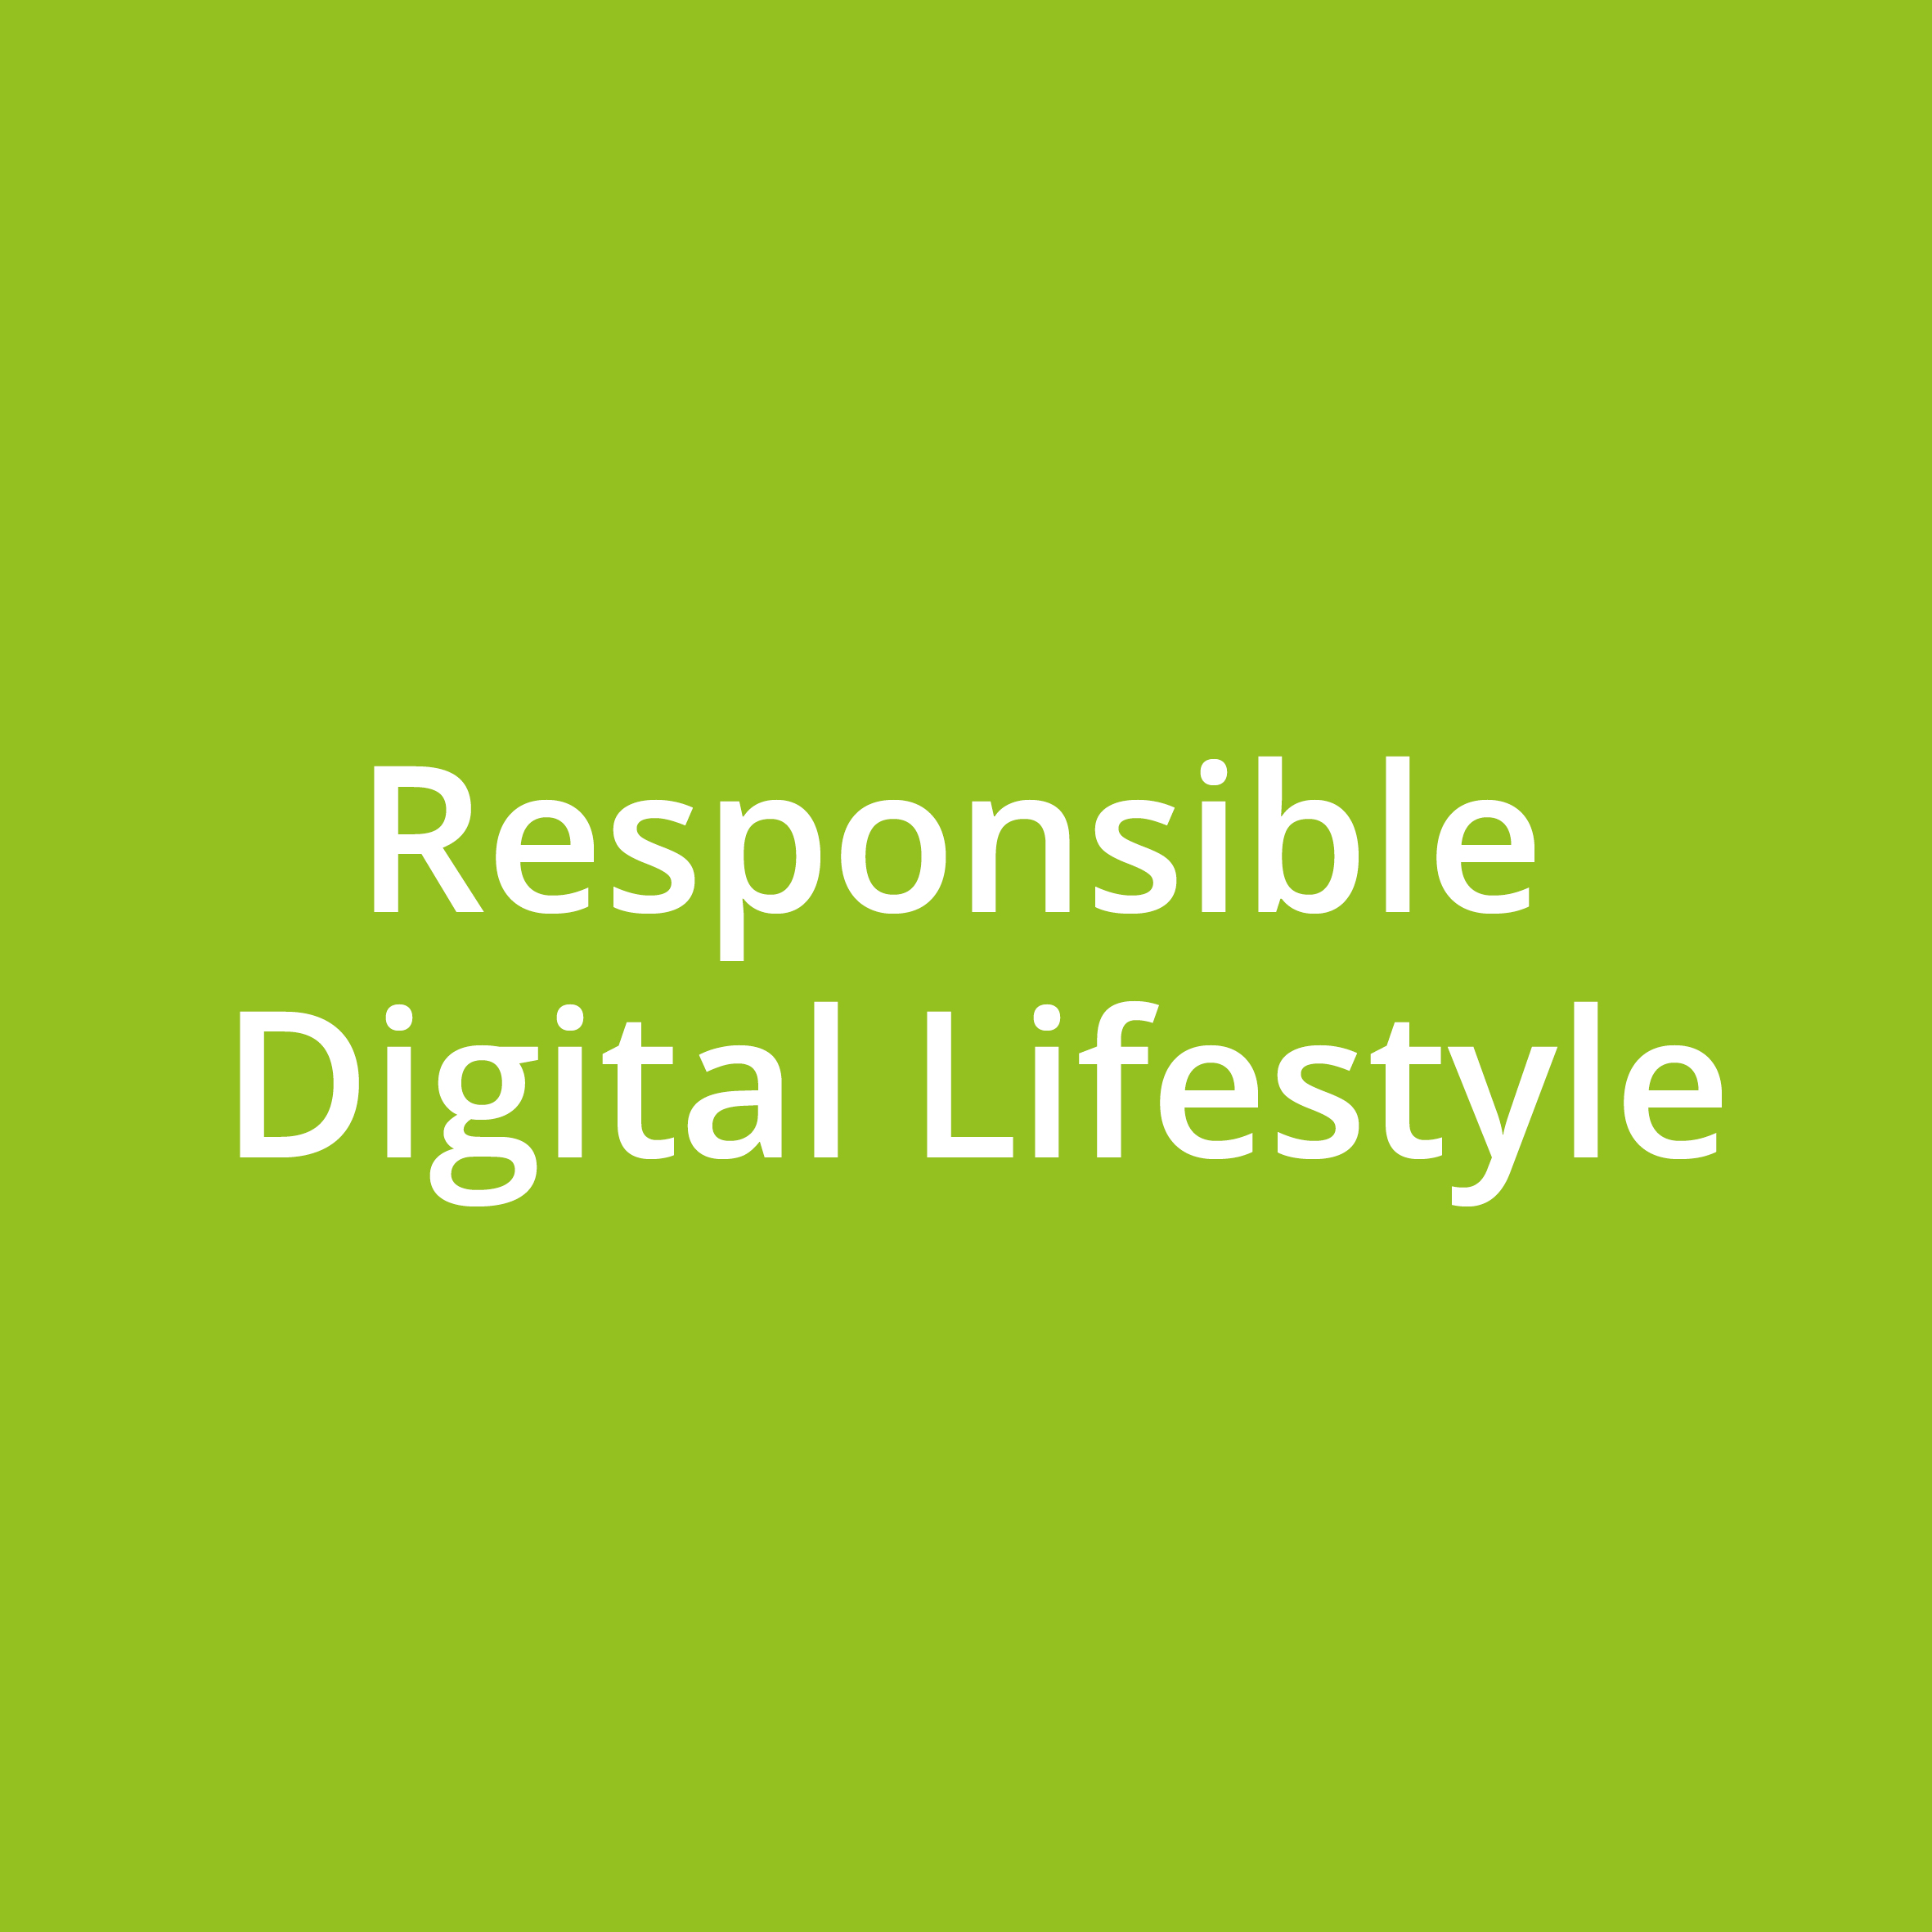 Responsible Digital Lifestyle